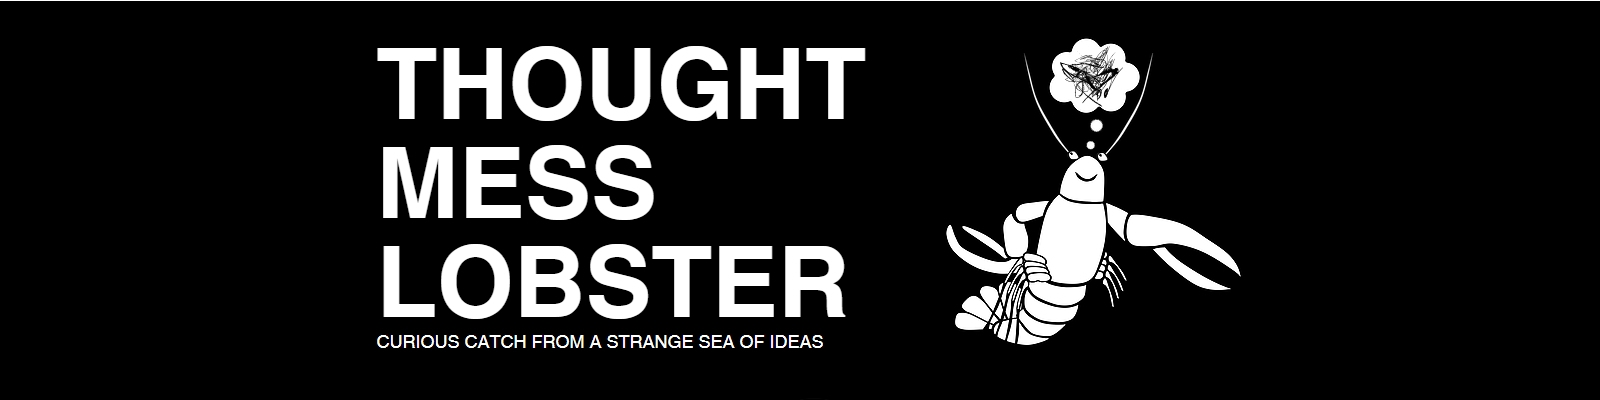 Thought Mess Lobster (@thoughtmesslobster) Cover Image